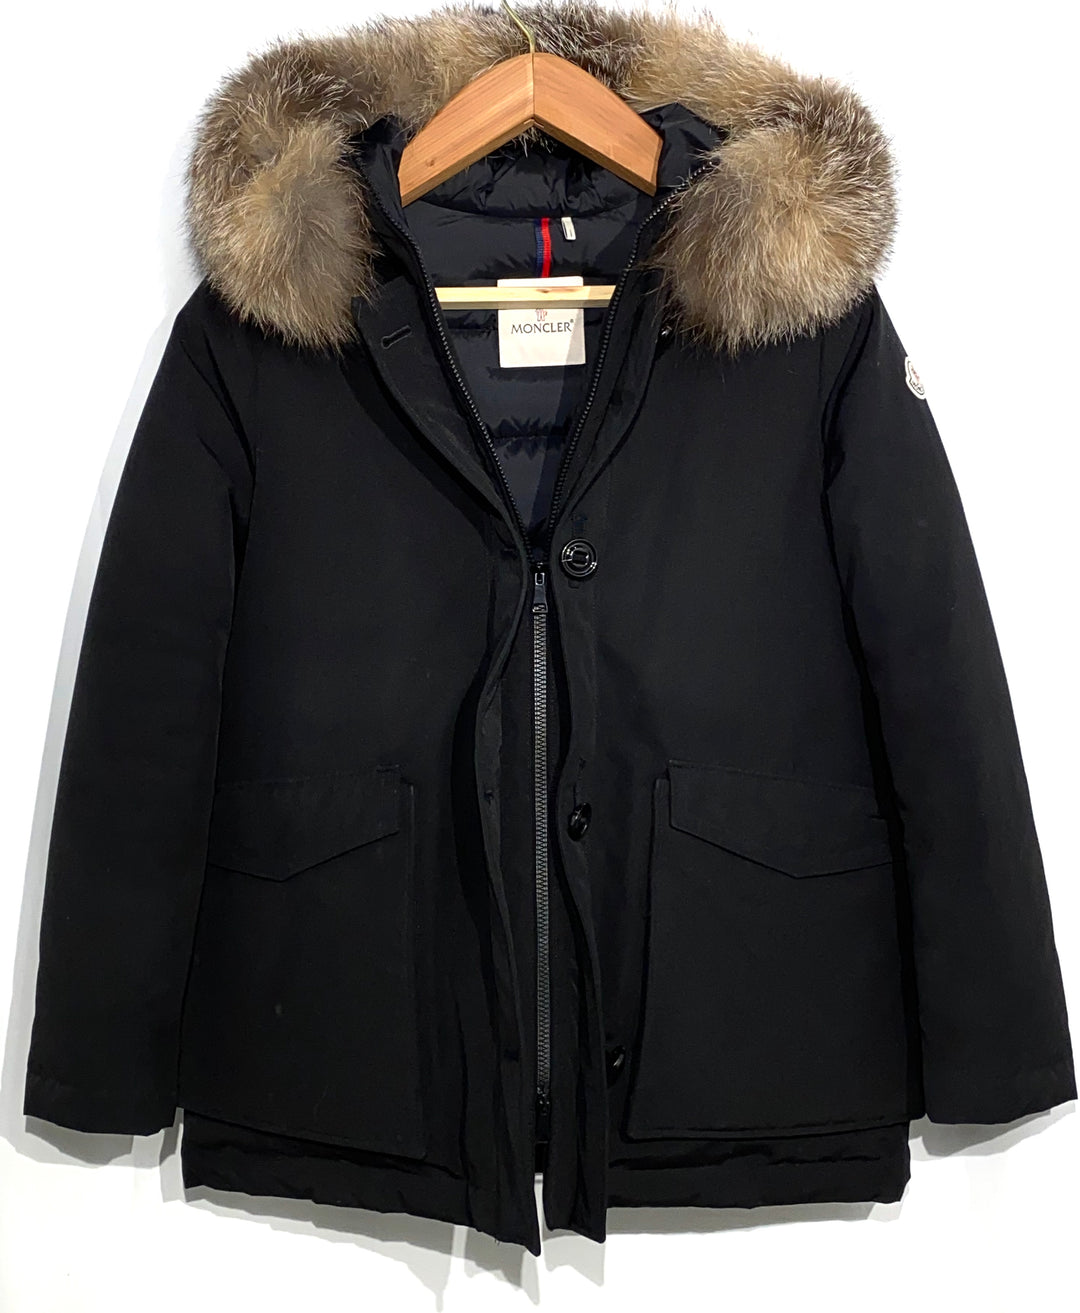 "Primary Photo - <P>BRAND: MONCLER<BR>STYLE: COAT<BR>COLOR: BLACK <BR>SIZE: 2/M<BR>OTHER INFO: MONCLER - <BR>SKU: 262-26275-64992<BR><BR>DESIGNER FINAL <BR>GREAT CONDITION SLIGHTEST FADE ON POCKET CORNERS (SEE PICS)<BR>PIT TO HEM 20""</P> <P>THIS FITS LIKE SIZE 10</P>"